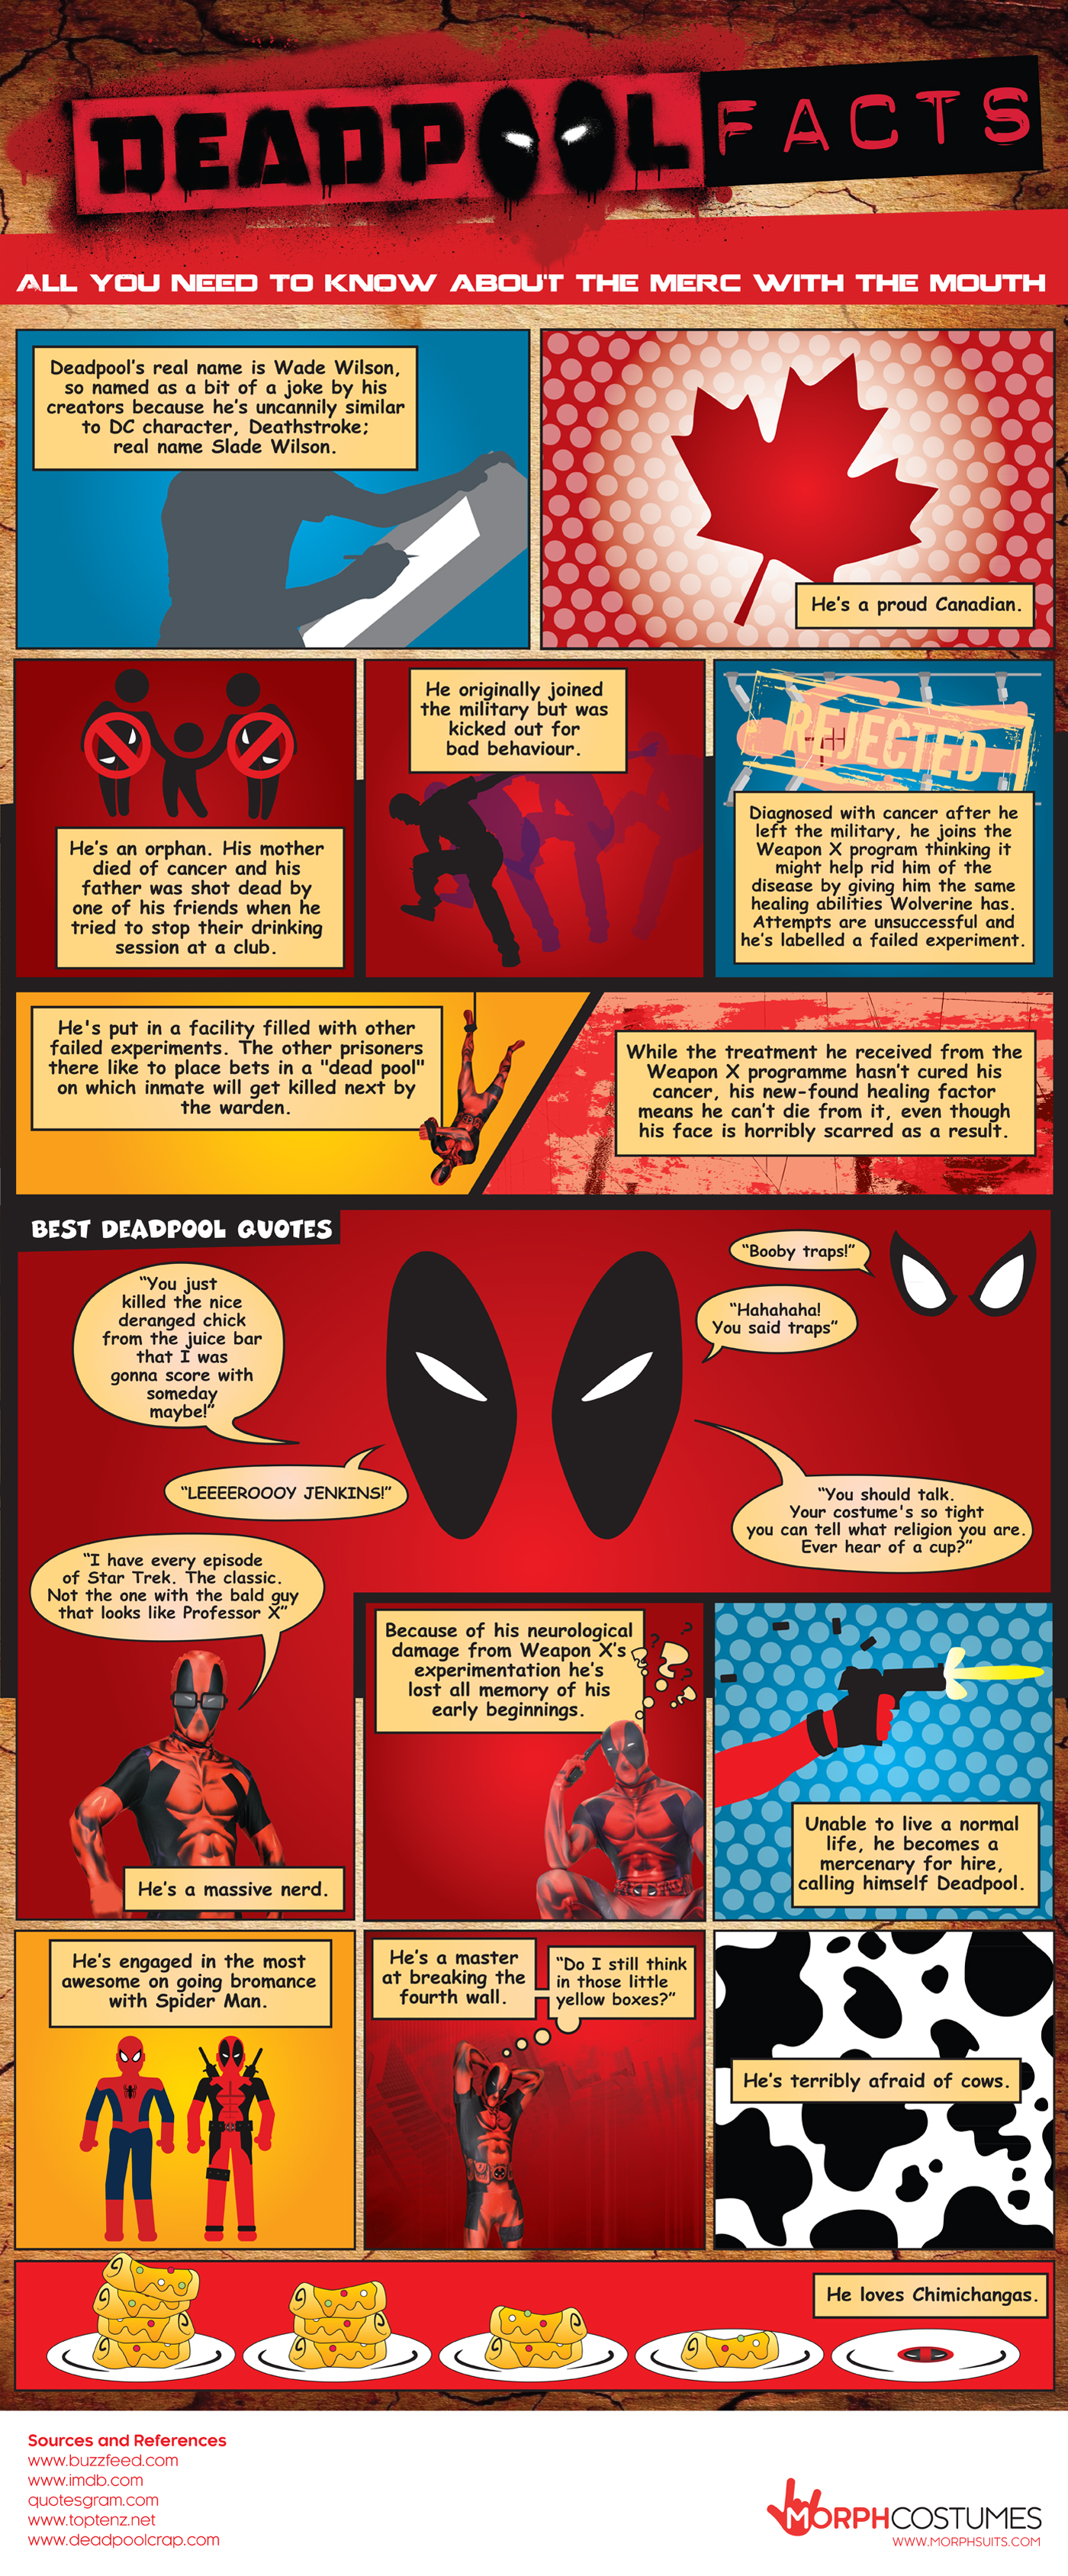 FINAL-Deadpool-Facts-info-graphic-2